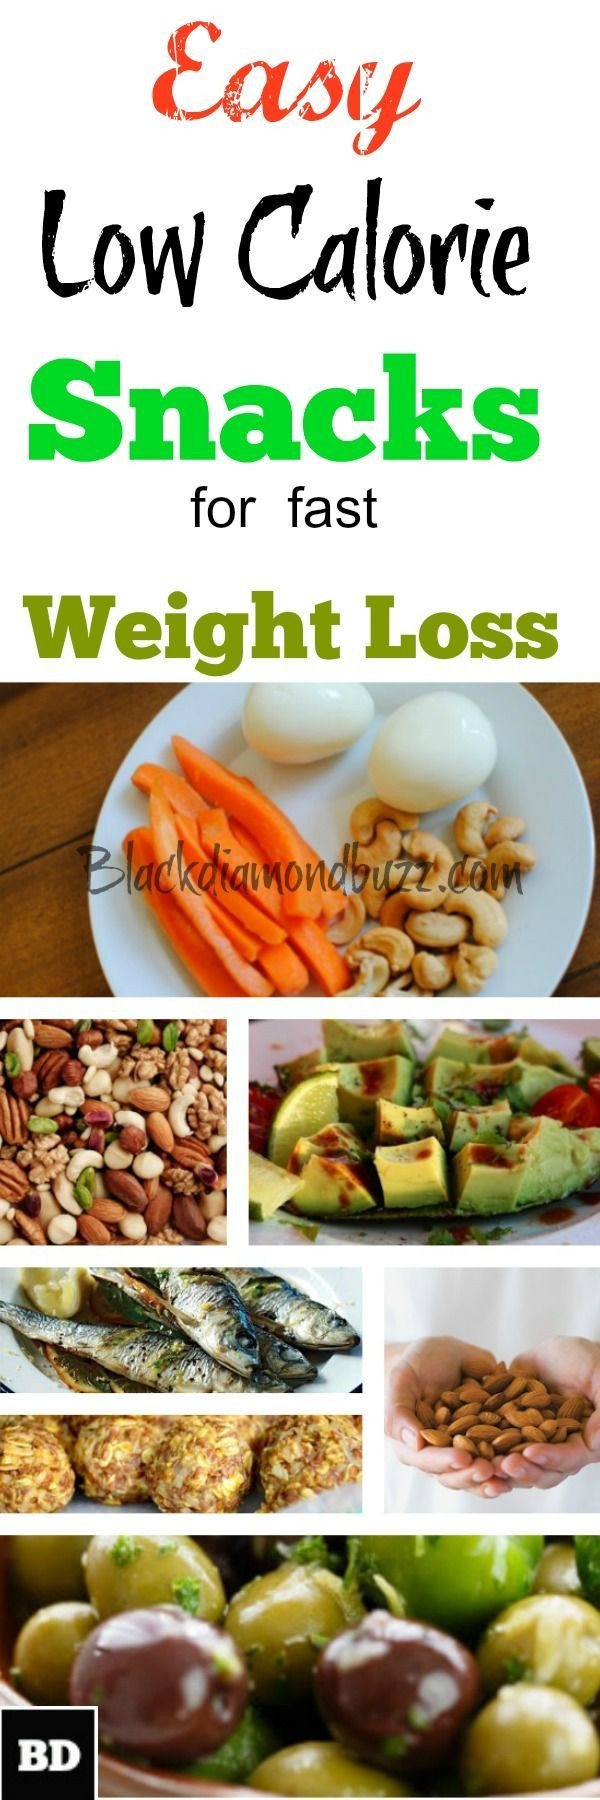 Are Pretzels Good For Weight Loss  Best 25 Snacks for weight loss ideas on Pinterest